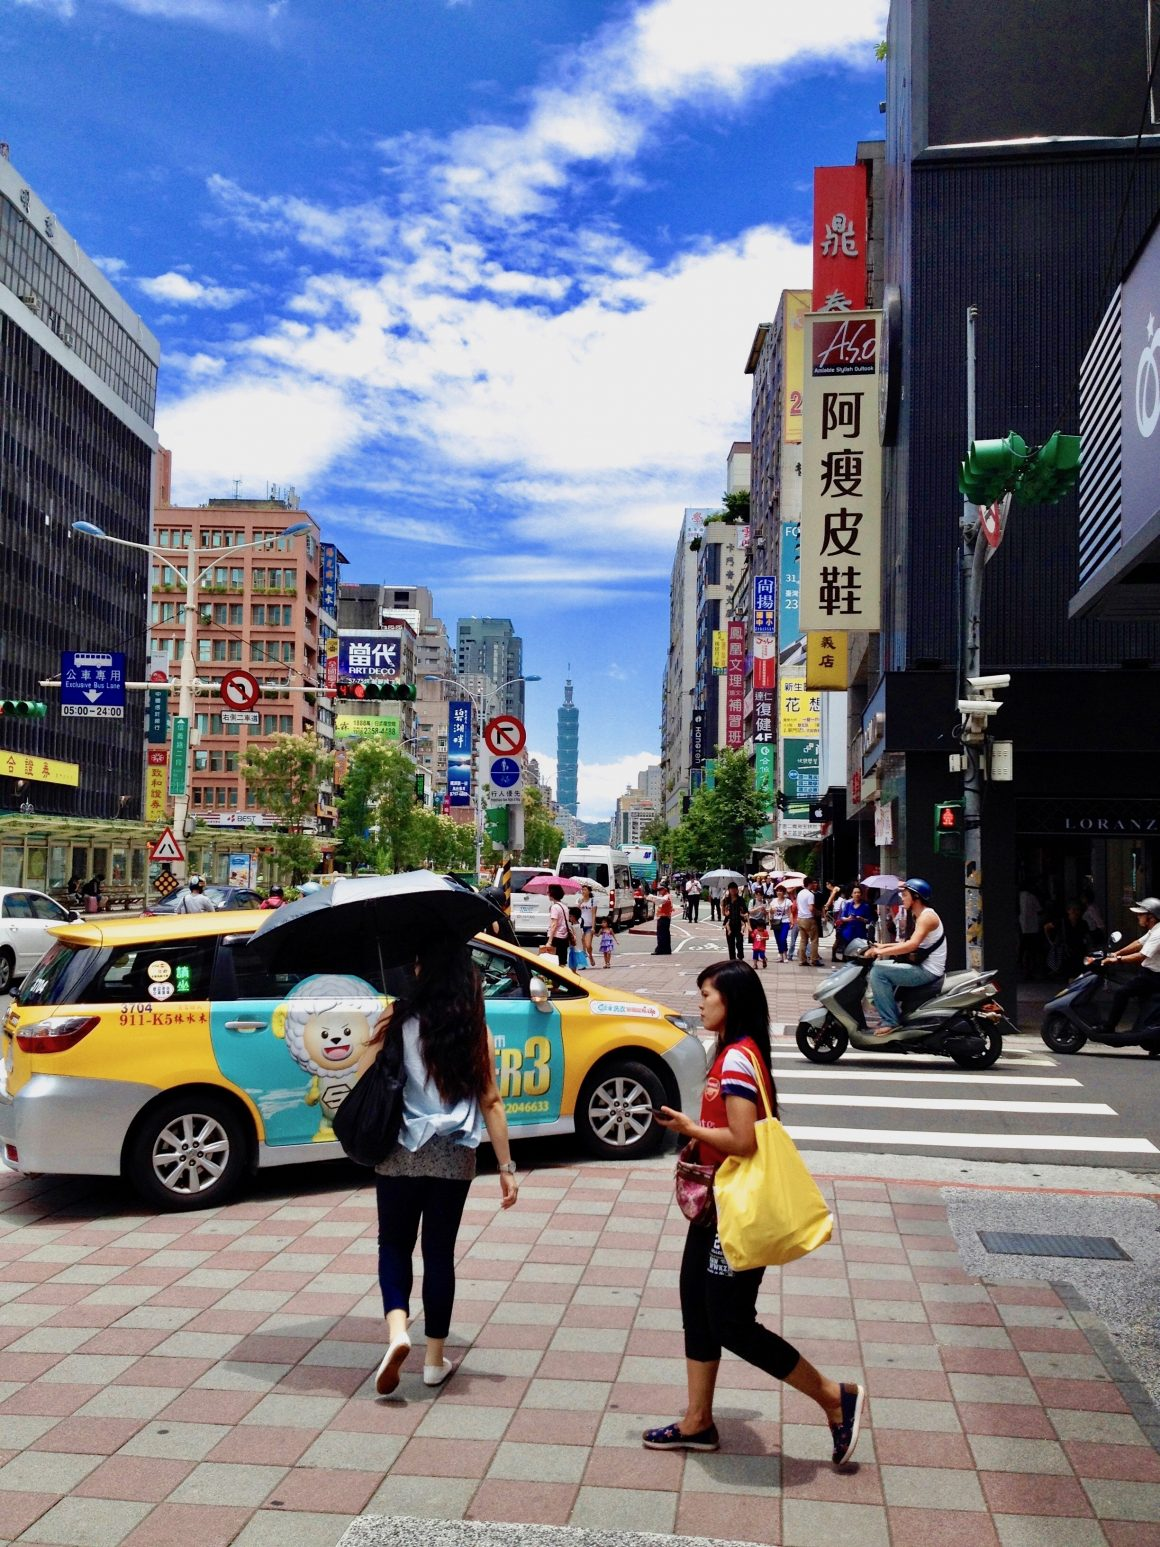 Taiwan – the Only Chinese Democracy